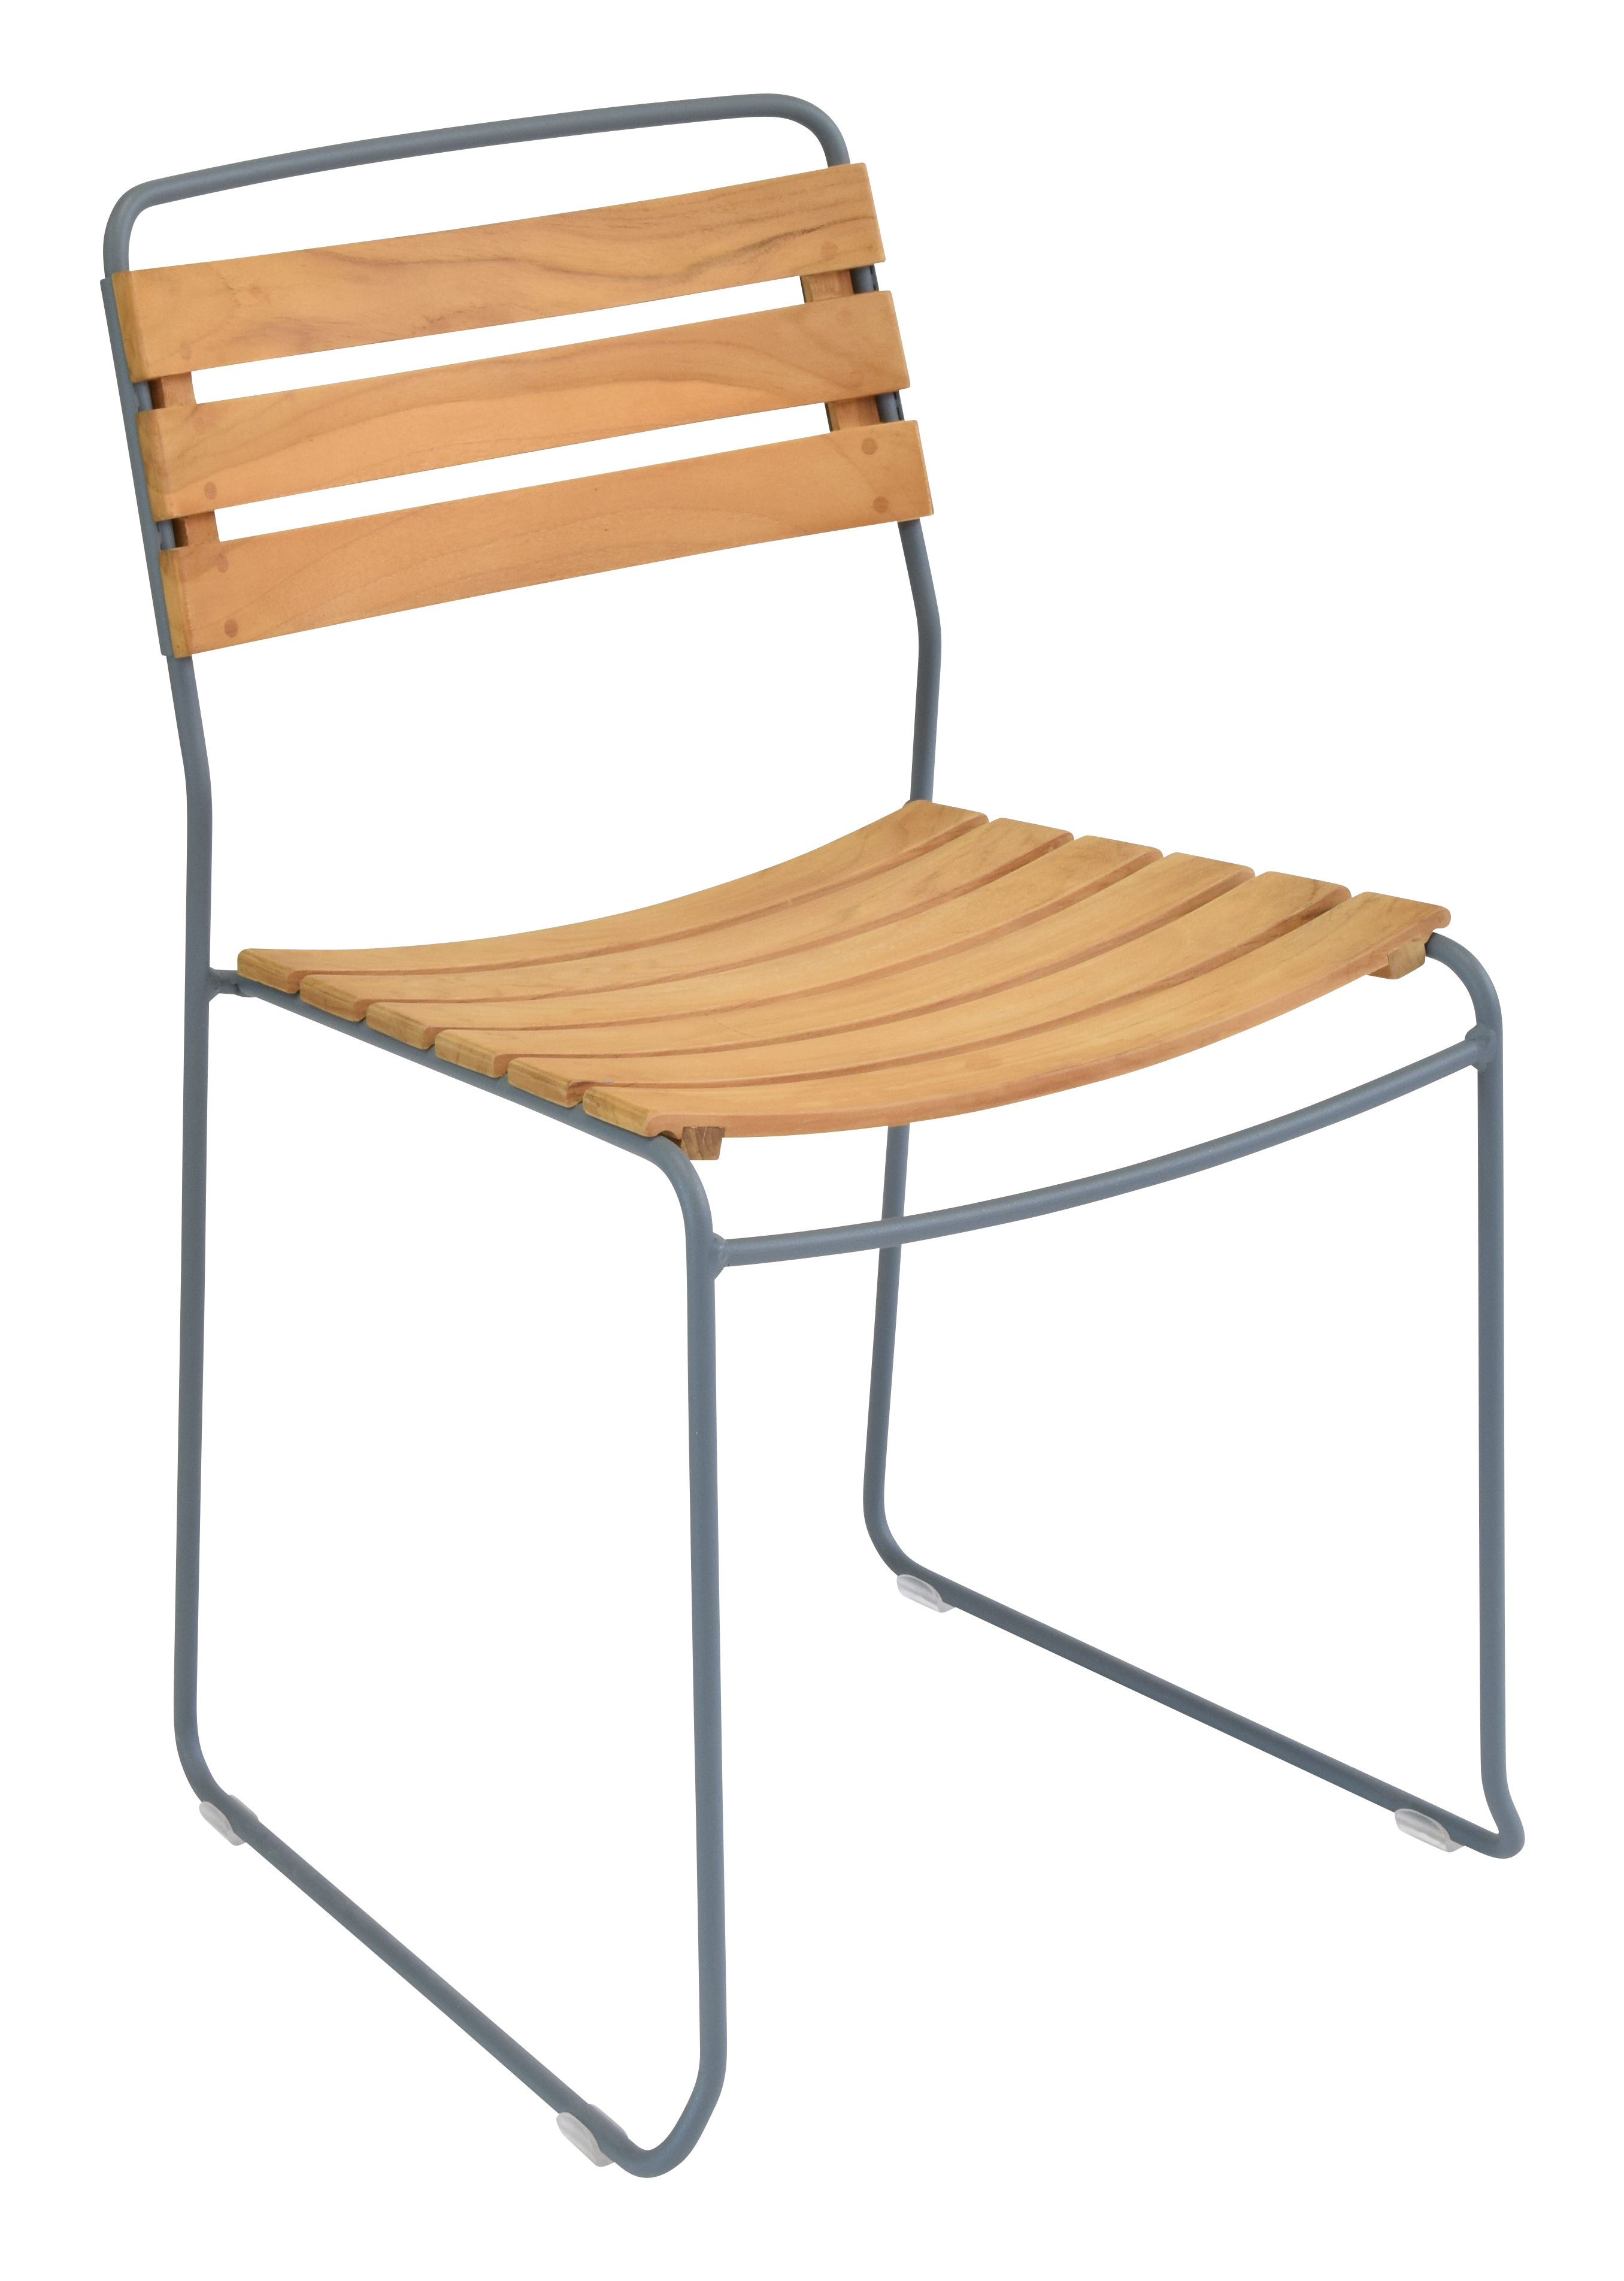 Furniture - Chairs - Surprising Stacking chair - / Wood & metal by Fermob - Storm grey / Wood - Oiled teak, Painted steel